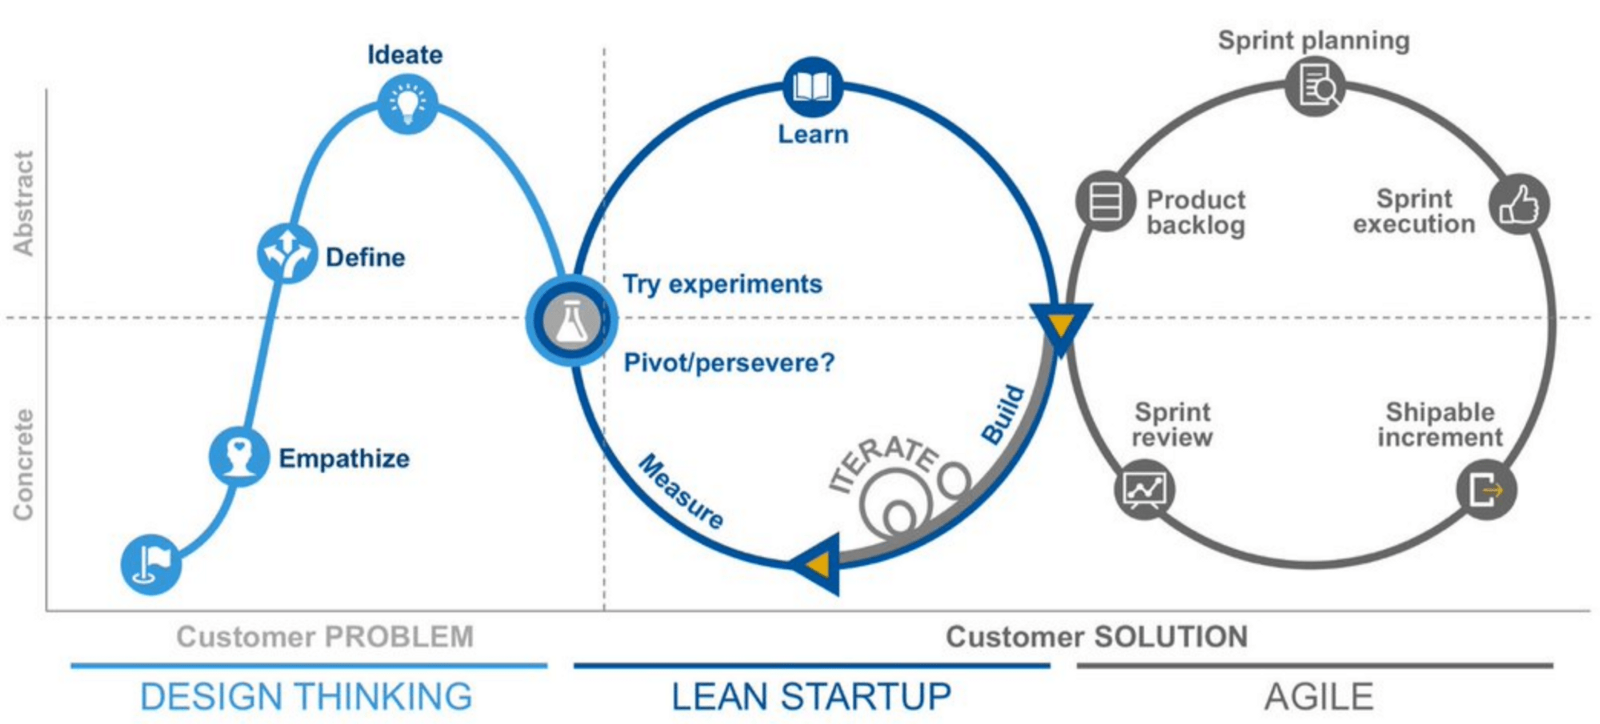 Design Thinking, Lean and Agile Better Defining Customer Problems and Solutions